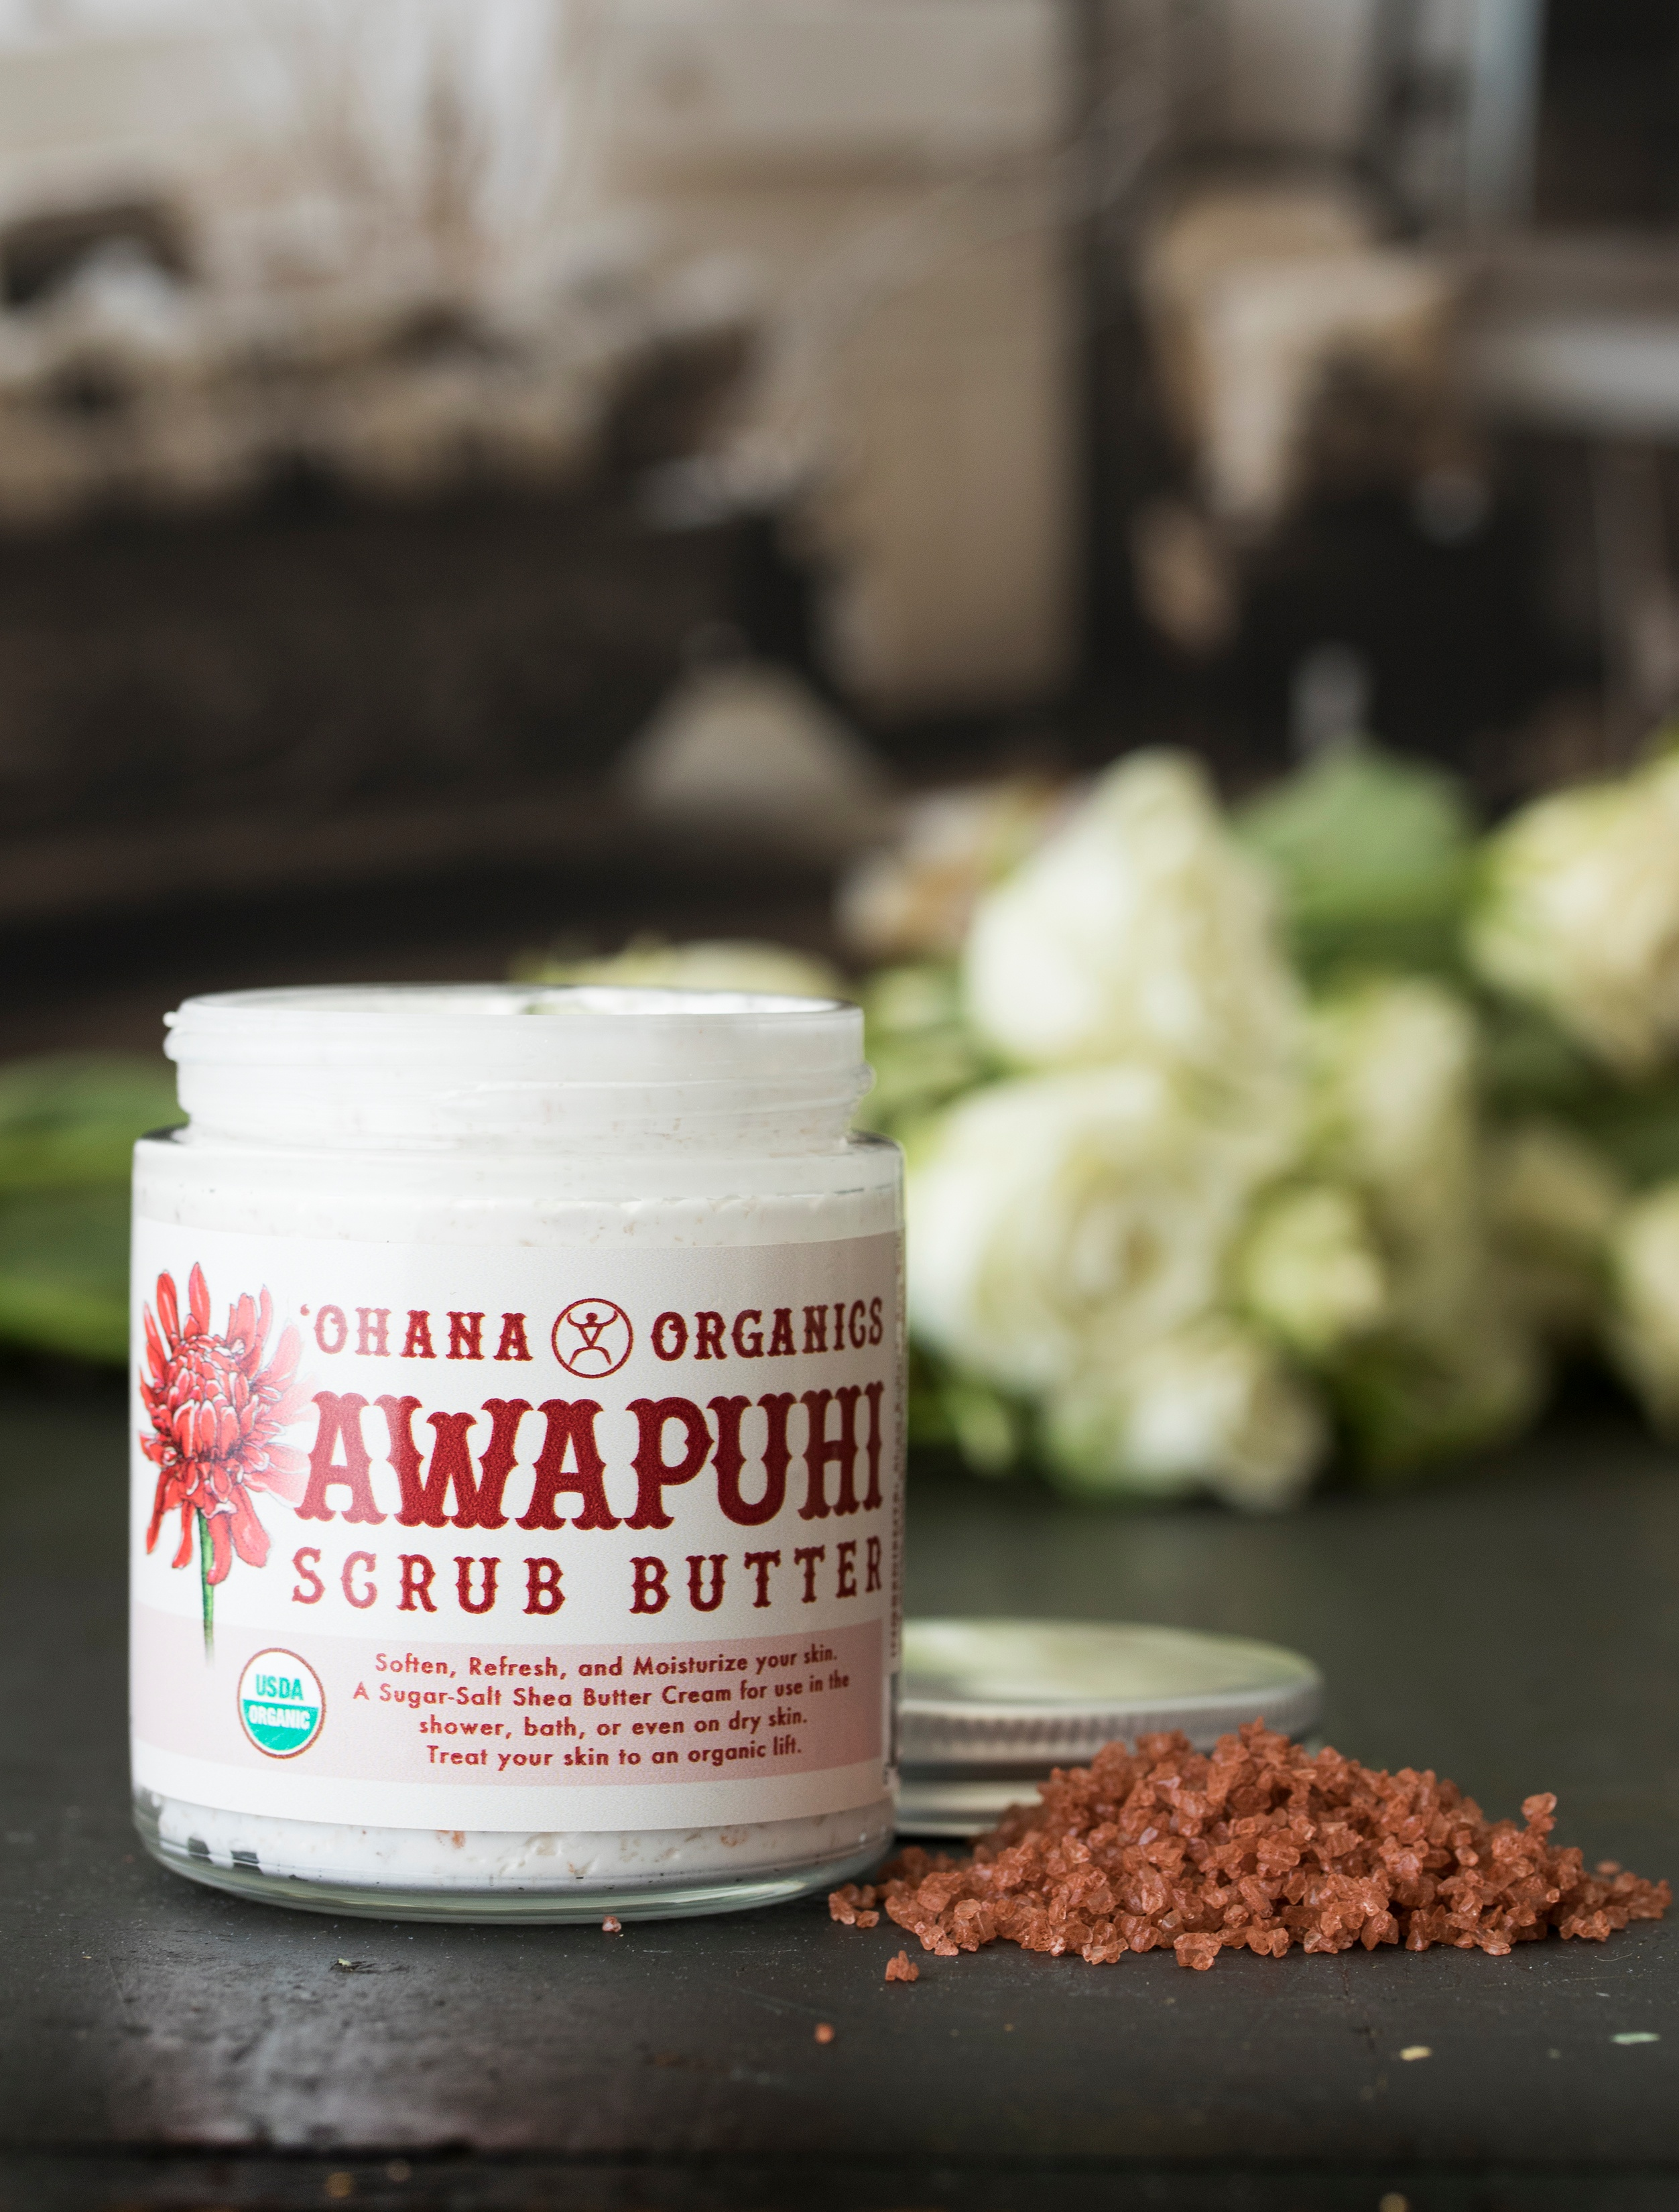 Awapuhi Scrub Butter from Ohana Organics sitting next to pile of red alea salt